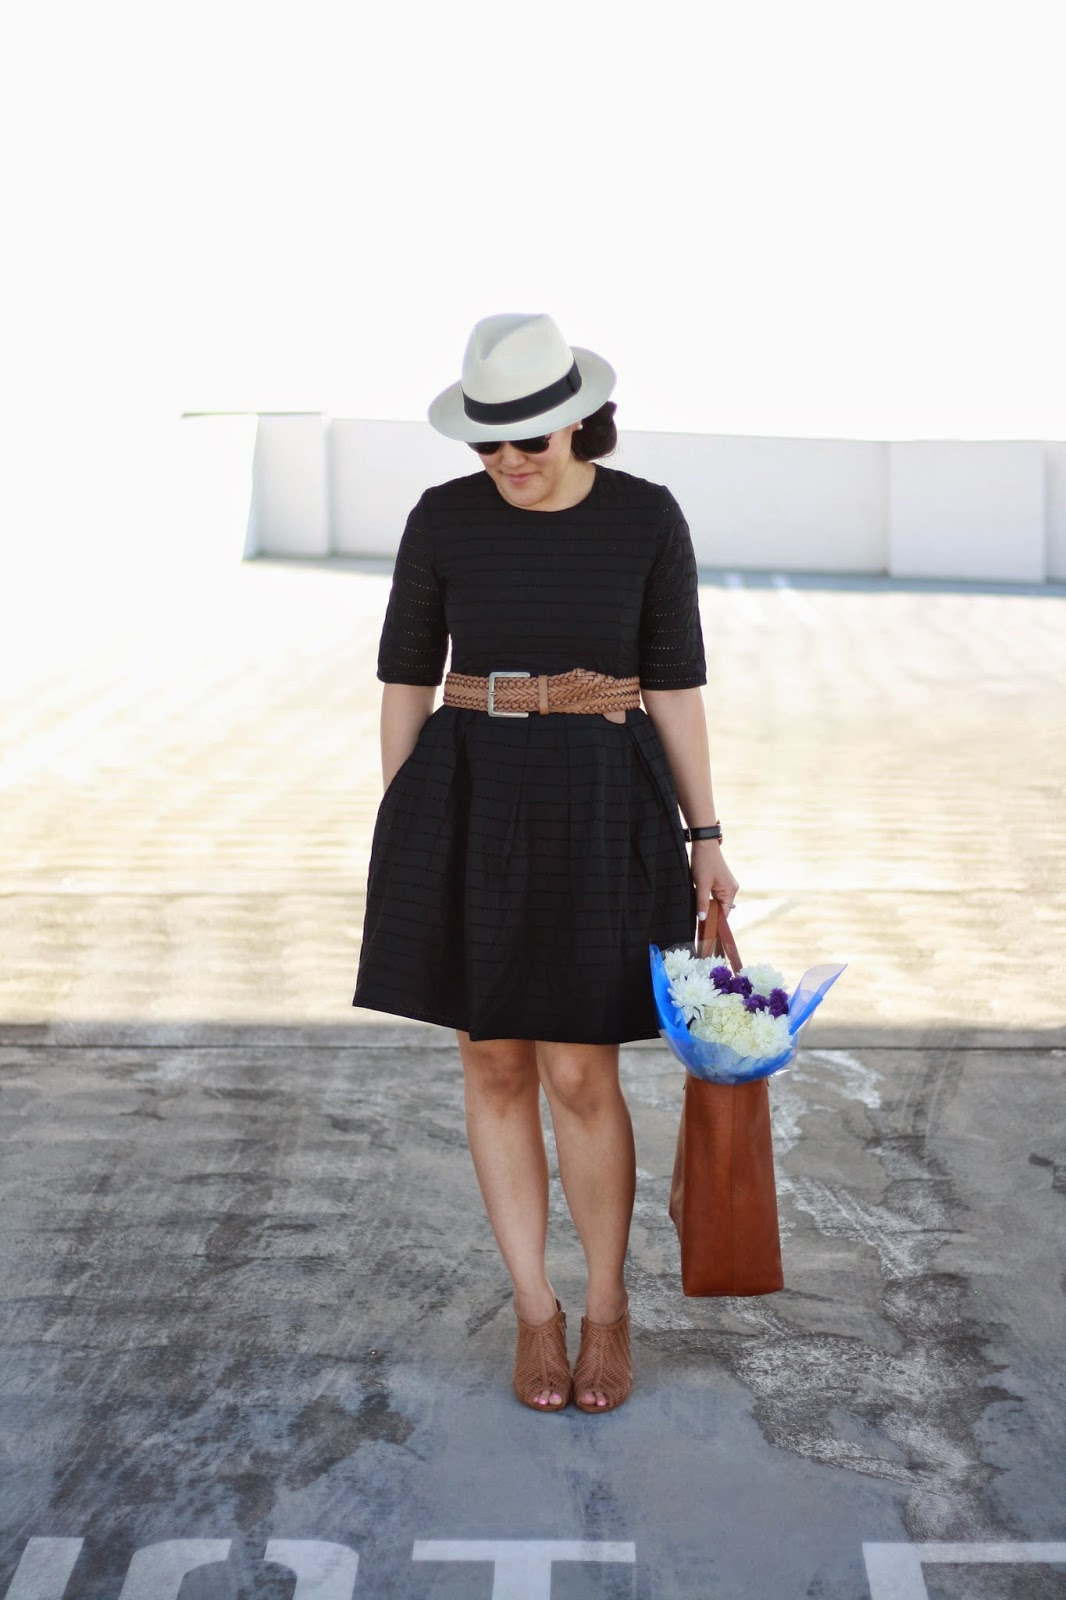 simplyxclassic, gap dress, madewell tote, aldo shoes, ocblogger, fashion blogger, style, orangey county, mommy blogger, mom style, summer outfit